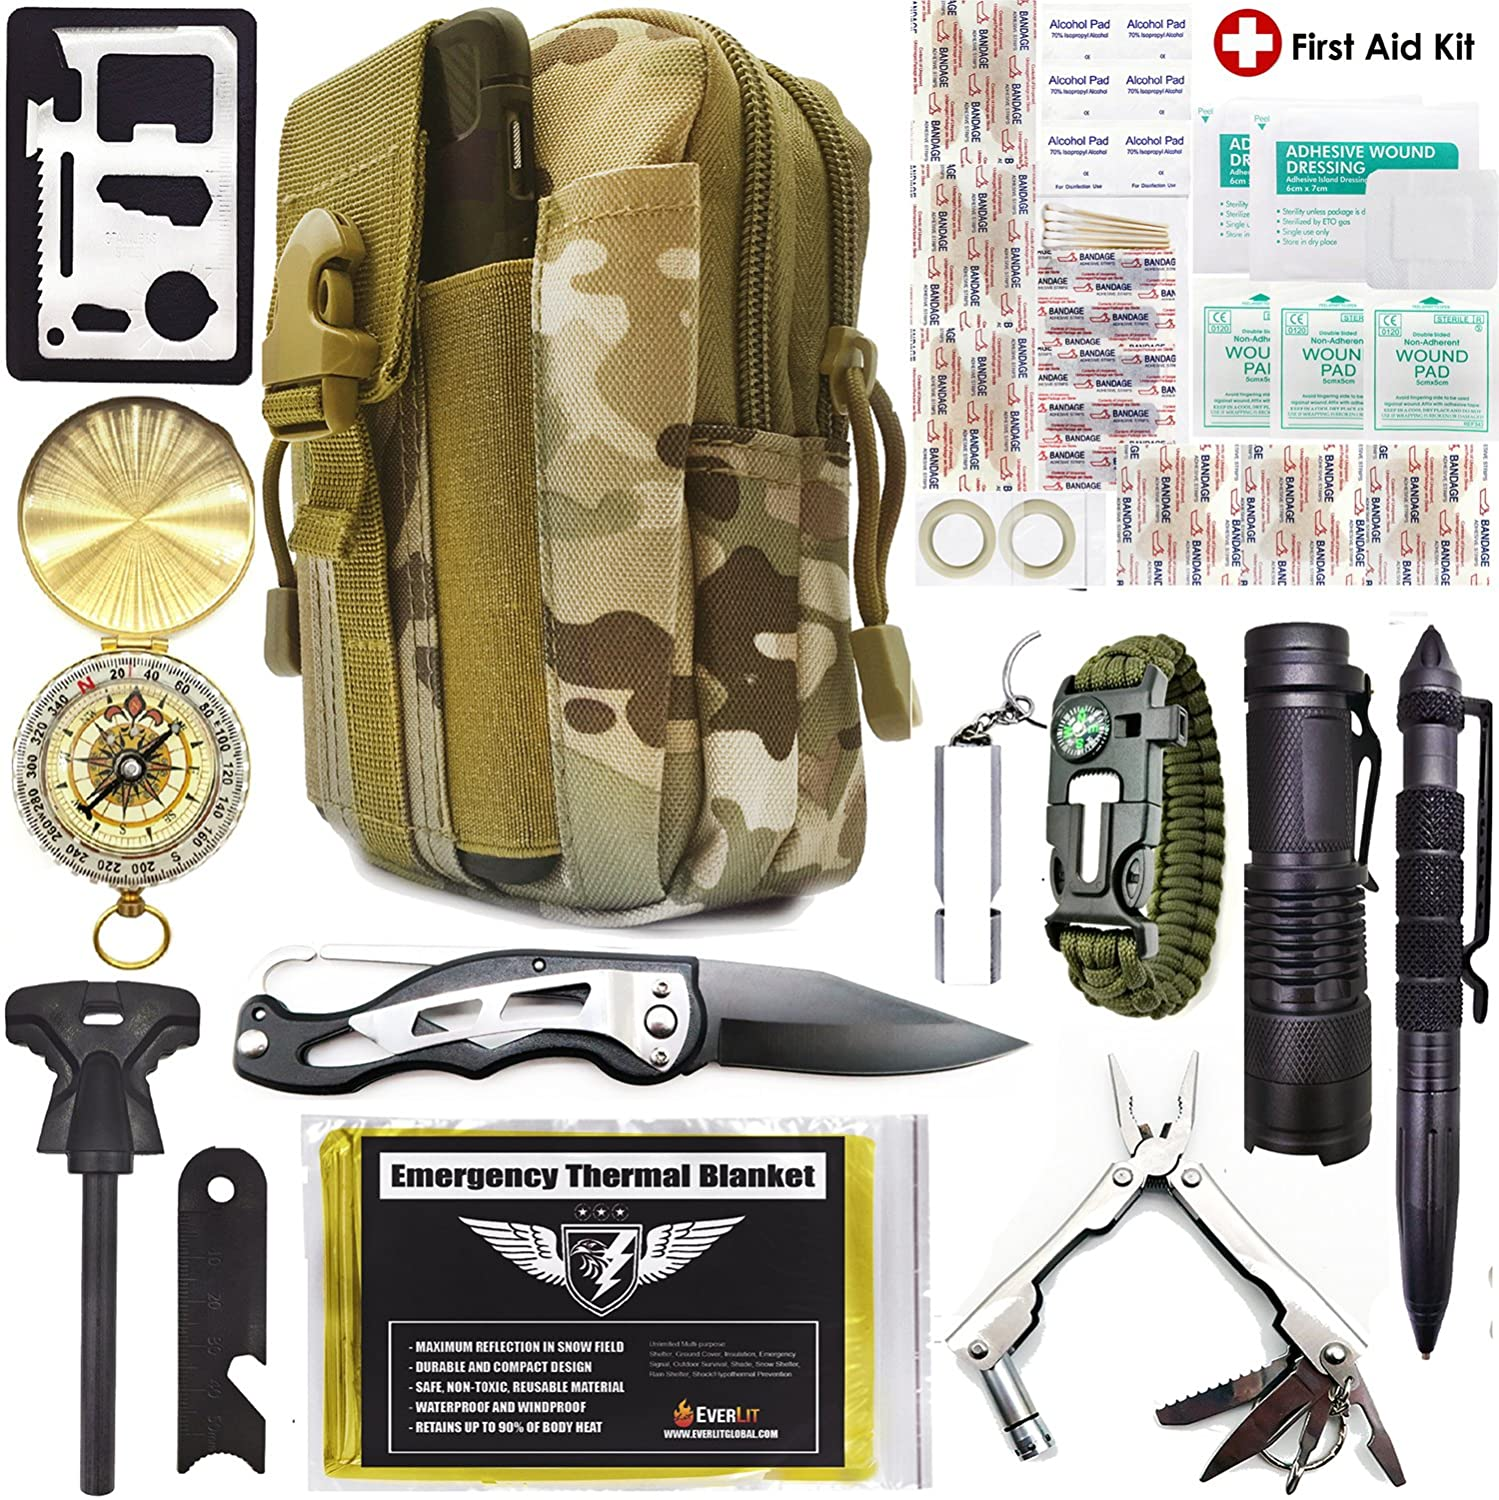 Everlit Emergency Survival Kit Upgraded 80-In-1 Molle Pouch/ Holster, Tactical Outdoor Gears, First Aid Supply, Survival Bracelet, Emergency Blanket, Tactical Pen, for Camping, Hiking, Hunting Fire Starter Plier